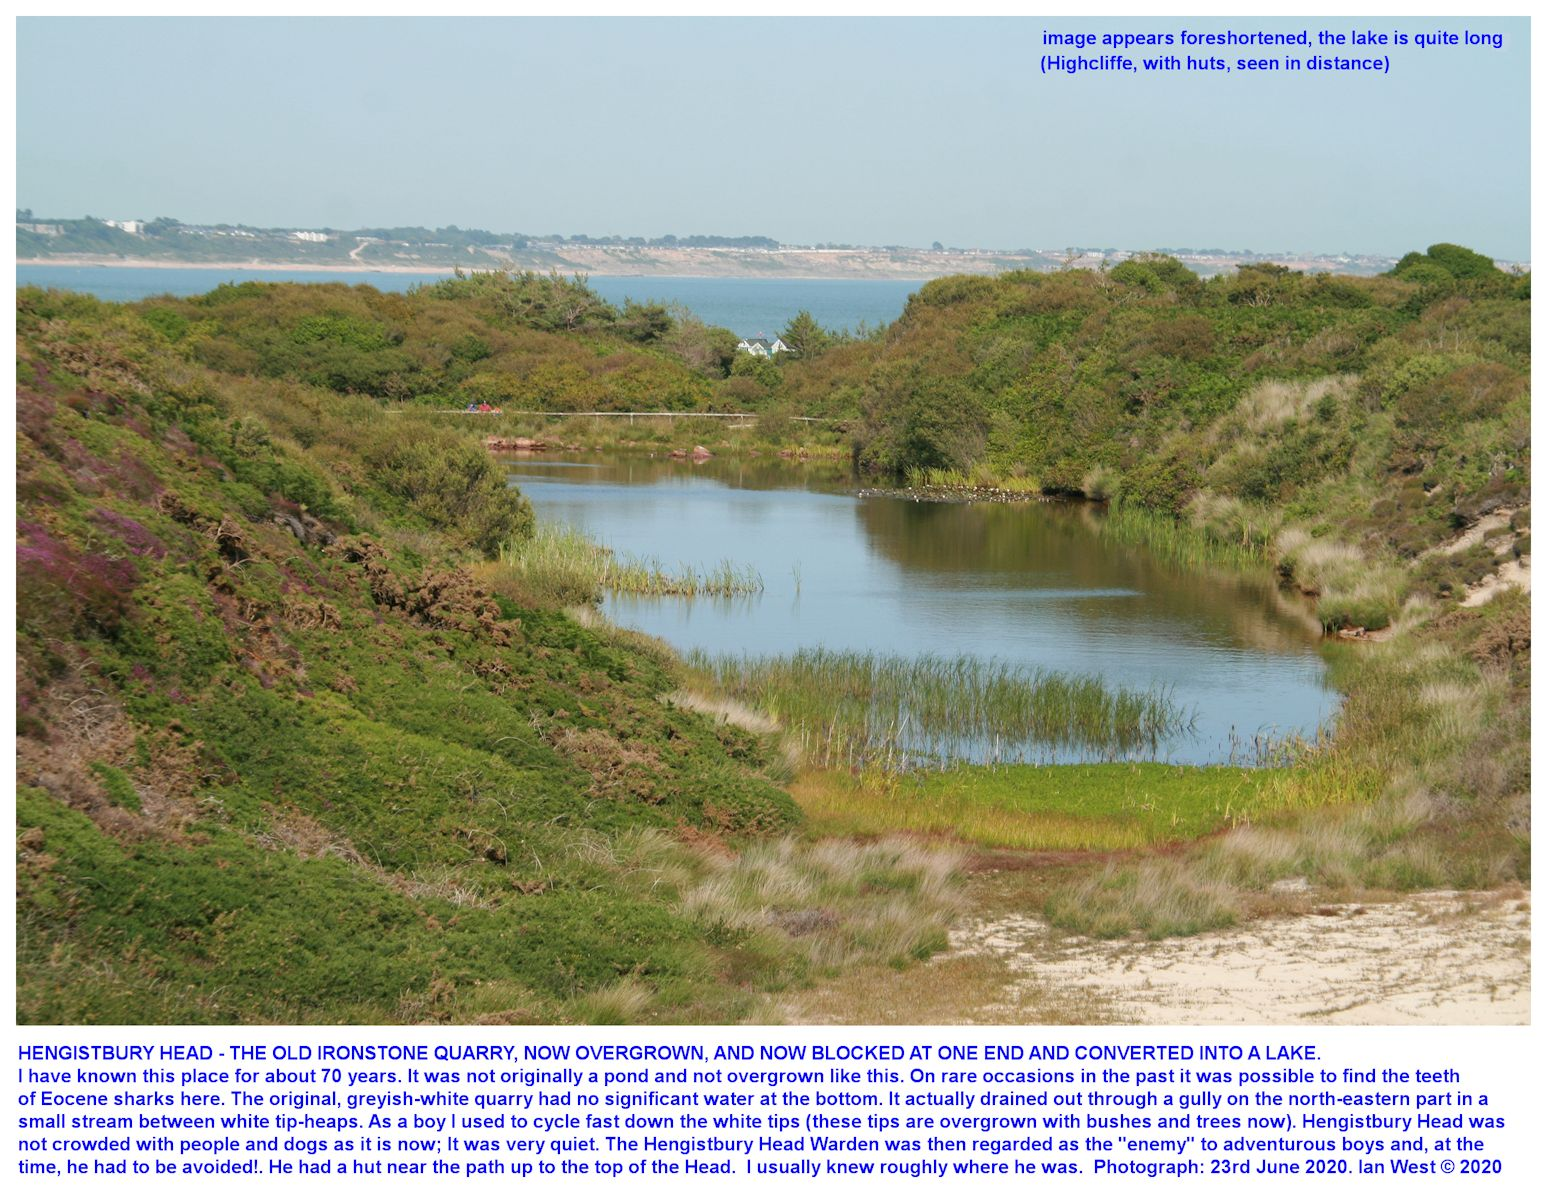 The old ironstone quarry of Hengistbury Head, now artificially flooded and rather overgrown, June 2020